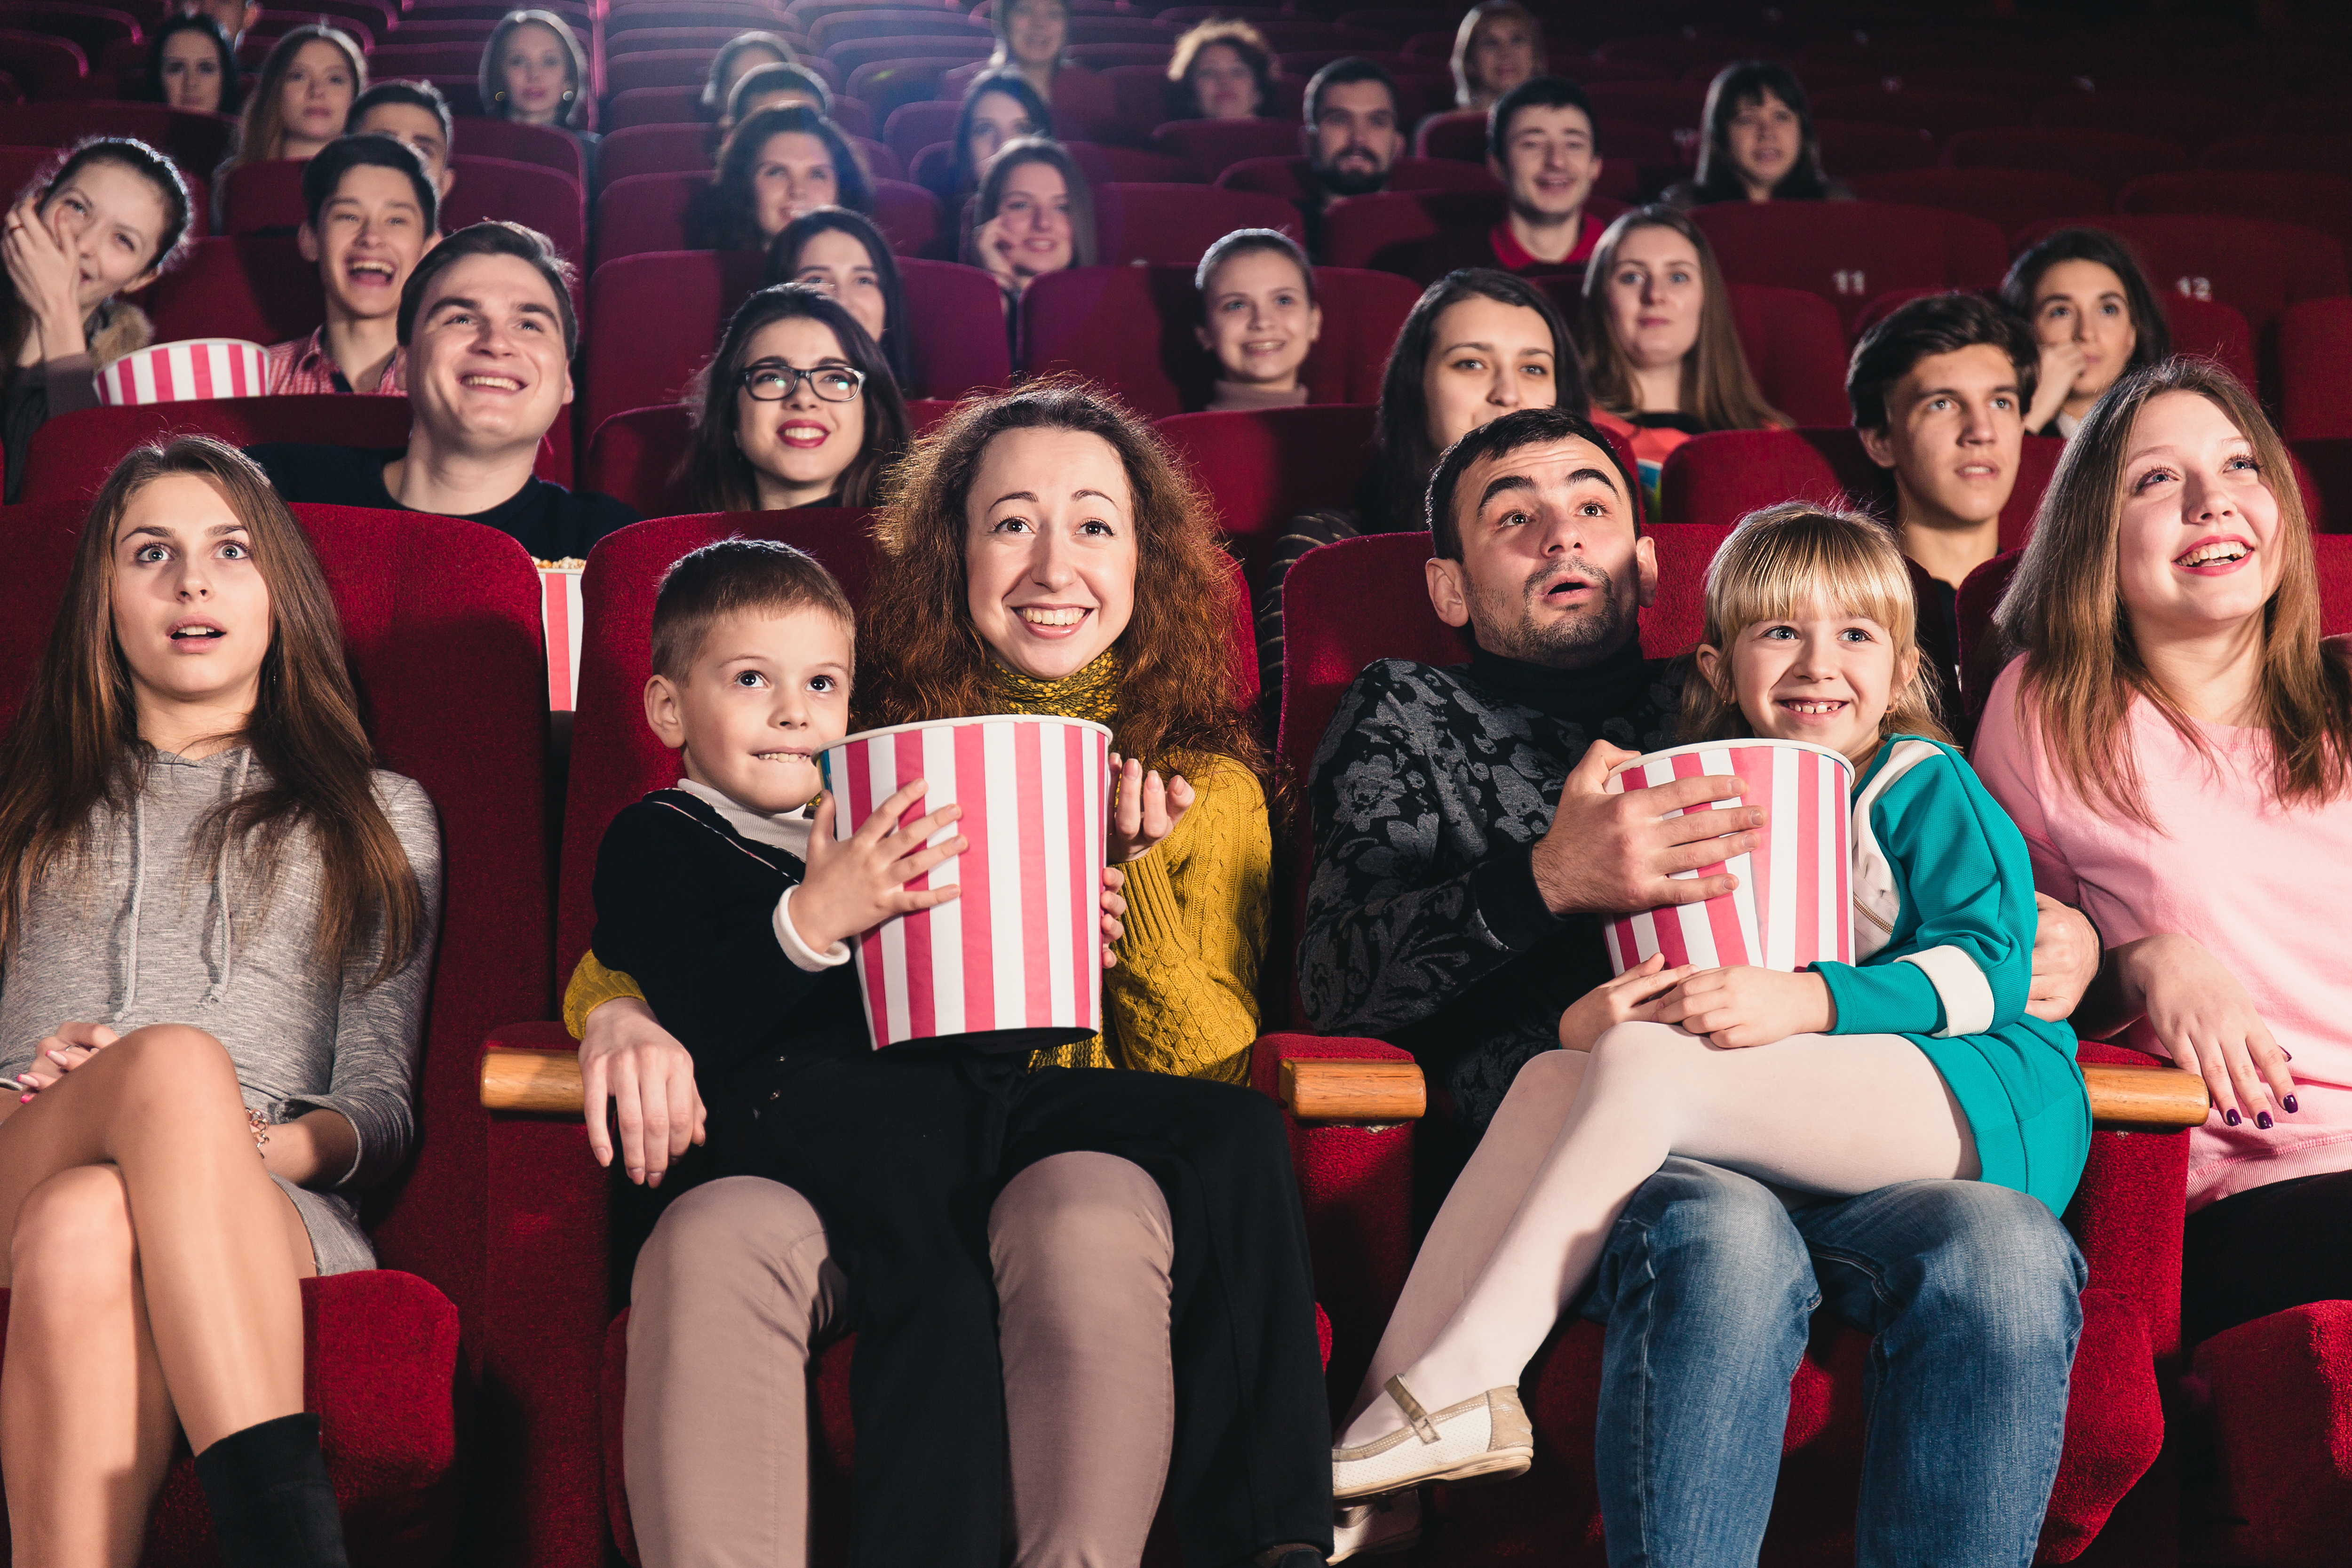 Cheap and free cinema tickets (Image: Shutterstock)